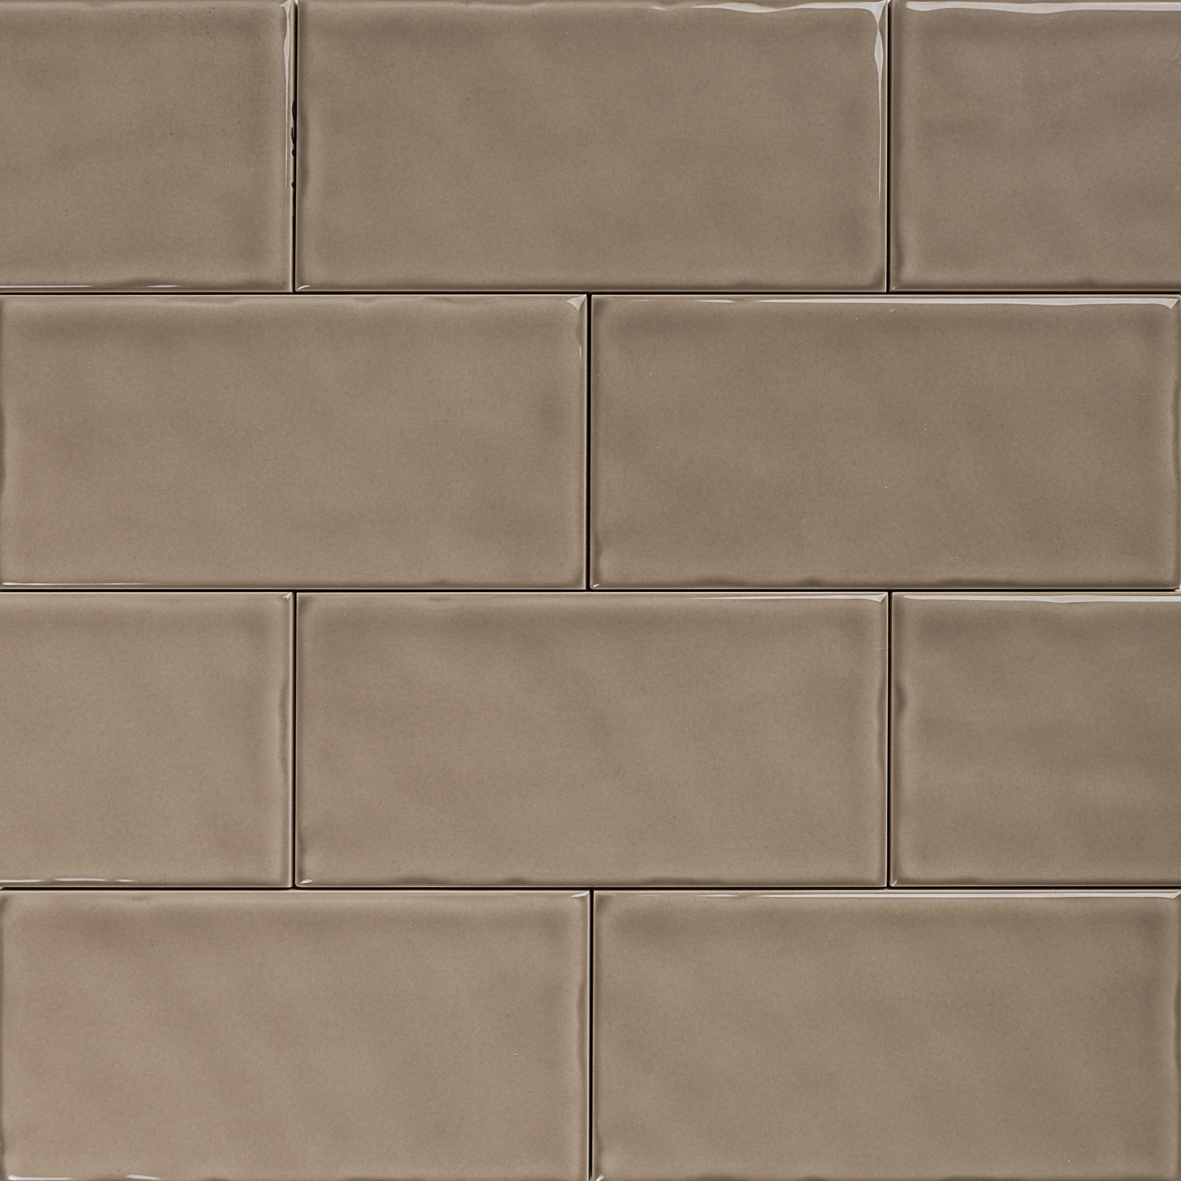 Subway taupe gloss wall tiles 150 215 75 classico textured in stretcher